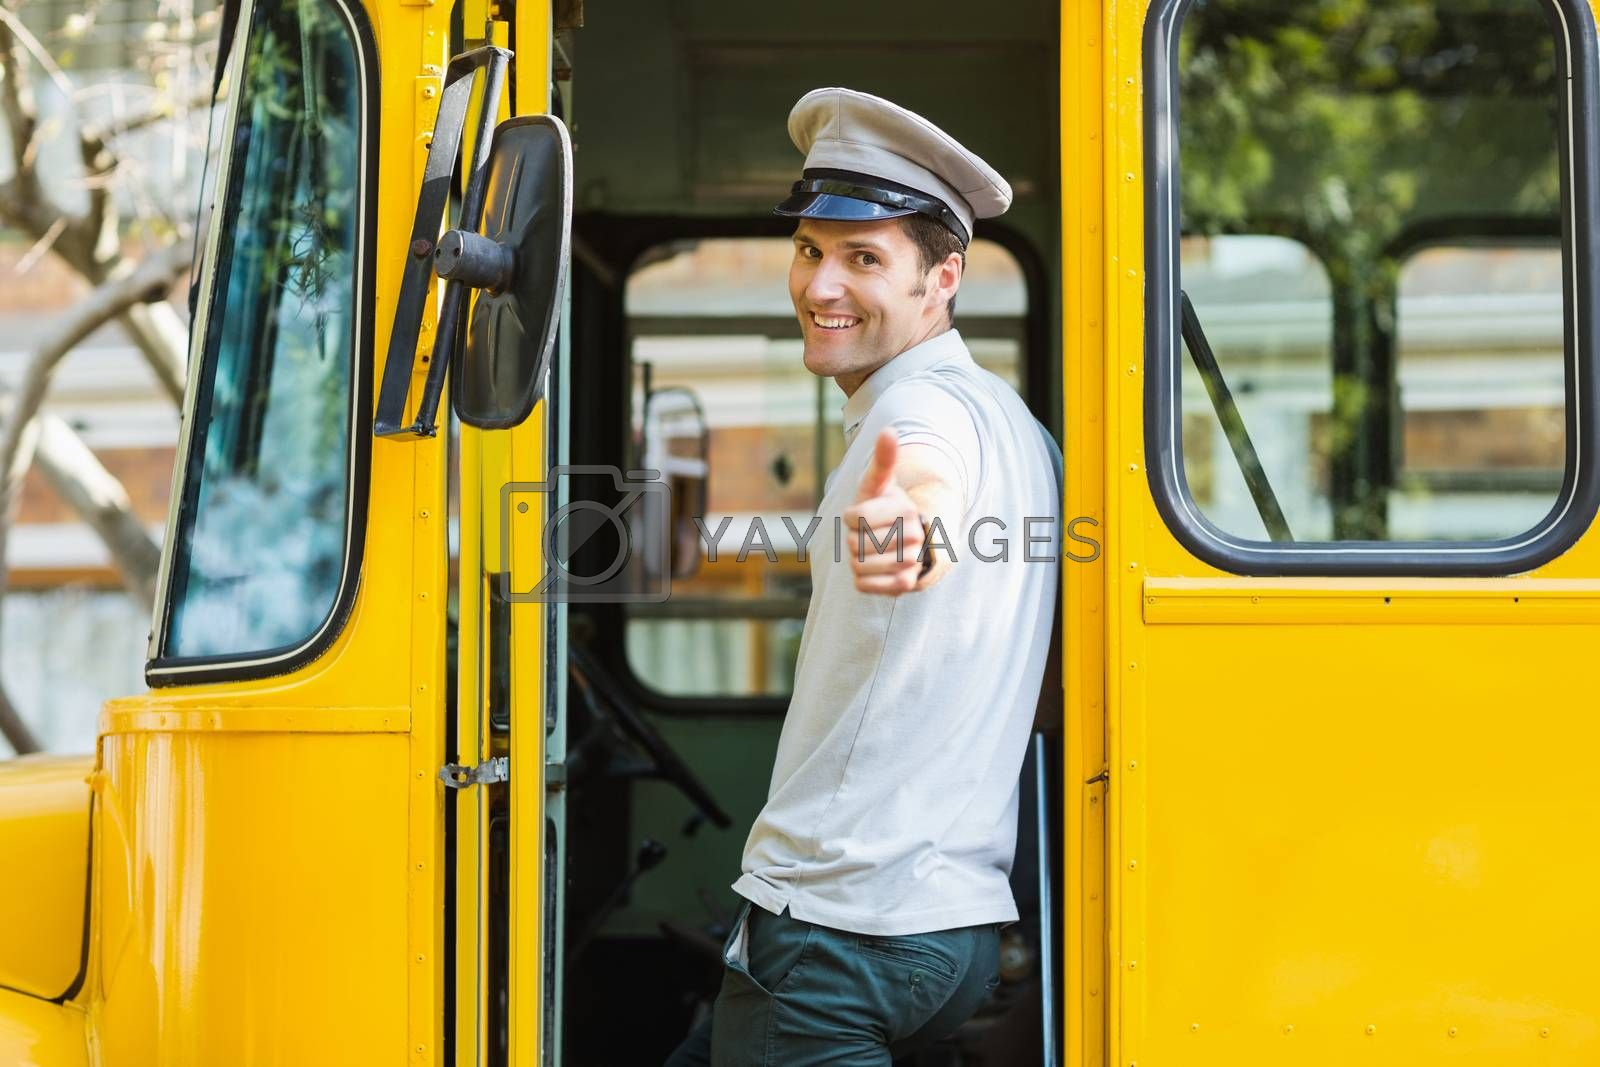 Portrait of bus driver showing thumbs up while entering in bus